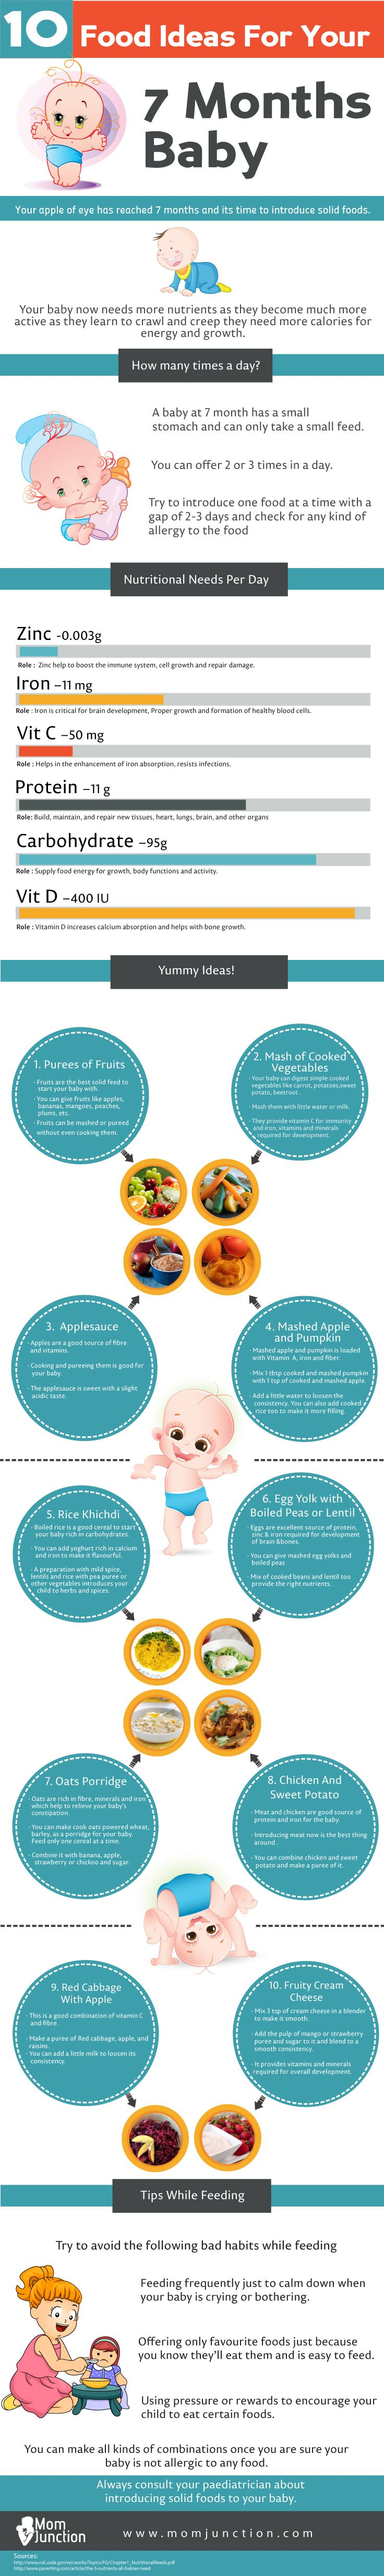 Congratulations! Your baby is now 7 months old. Thinking which foods you can offer your baby at this stage? Here is our list of ideas for 7 month baby food